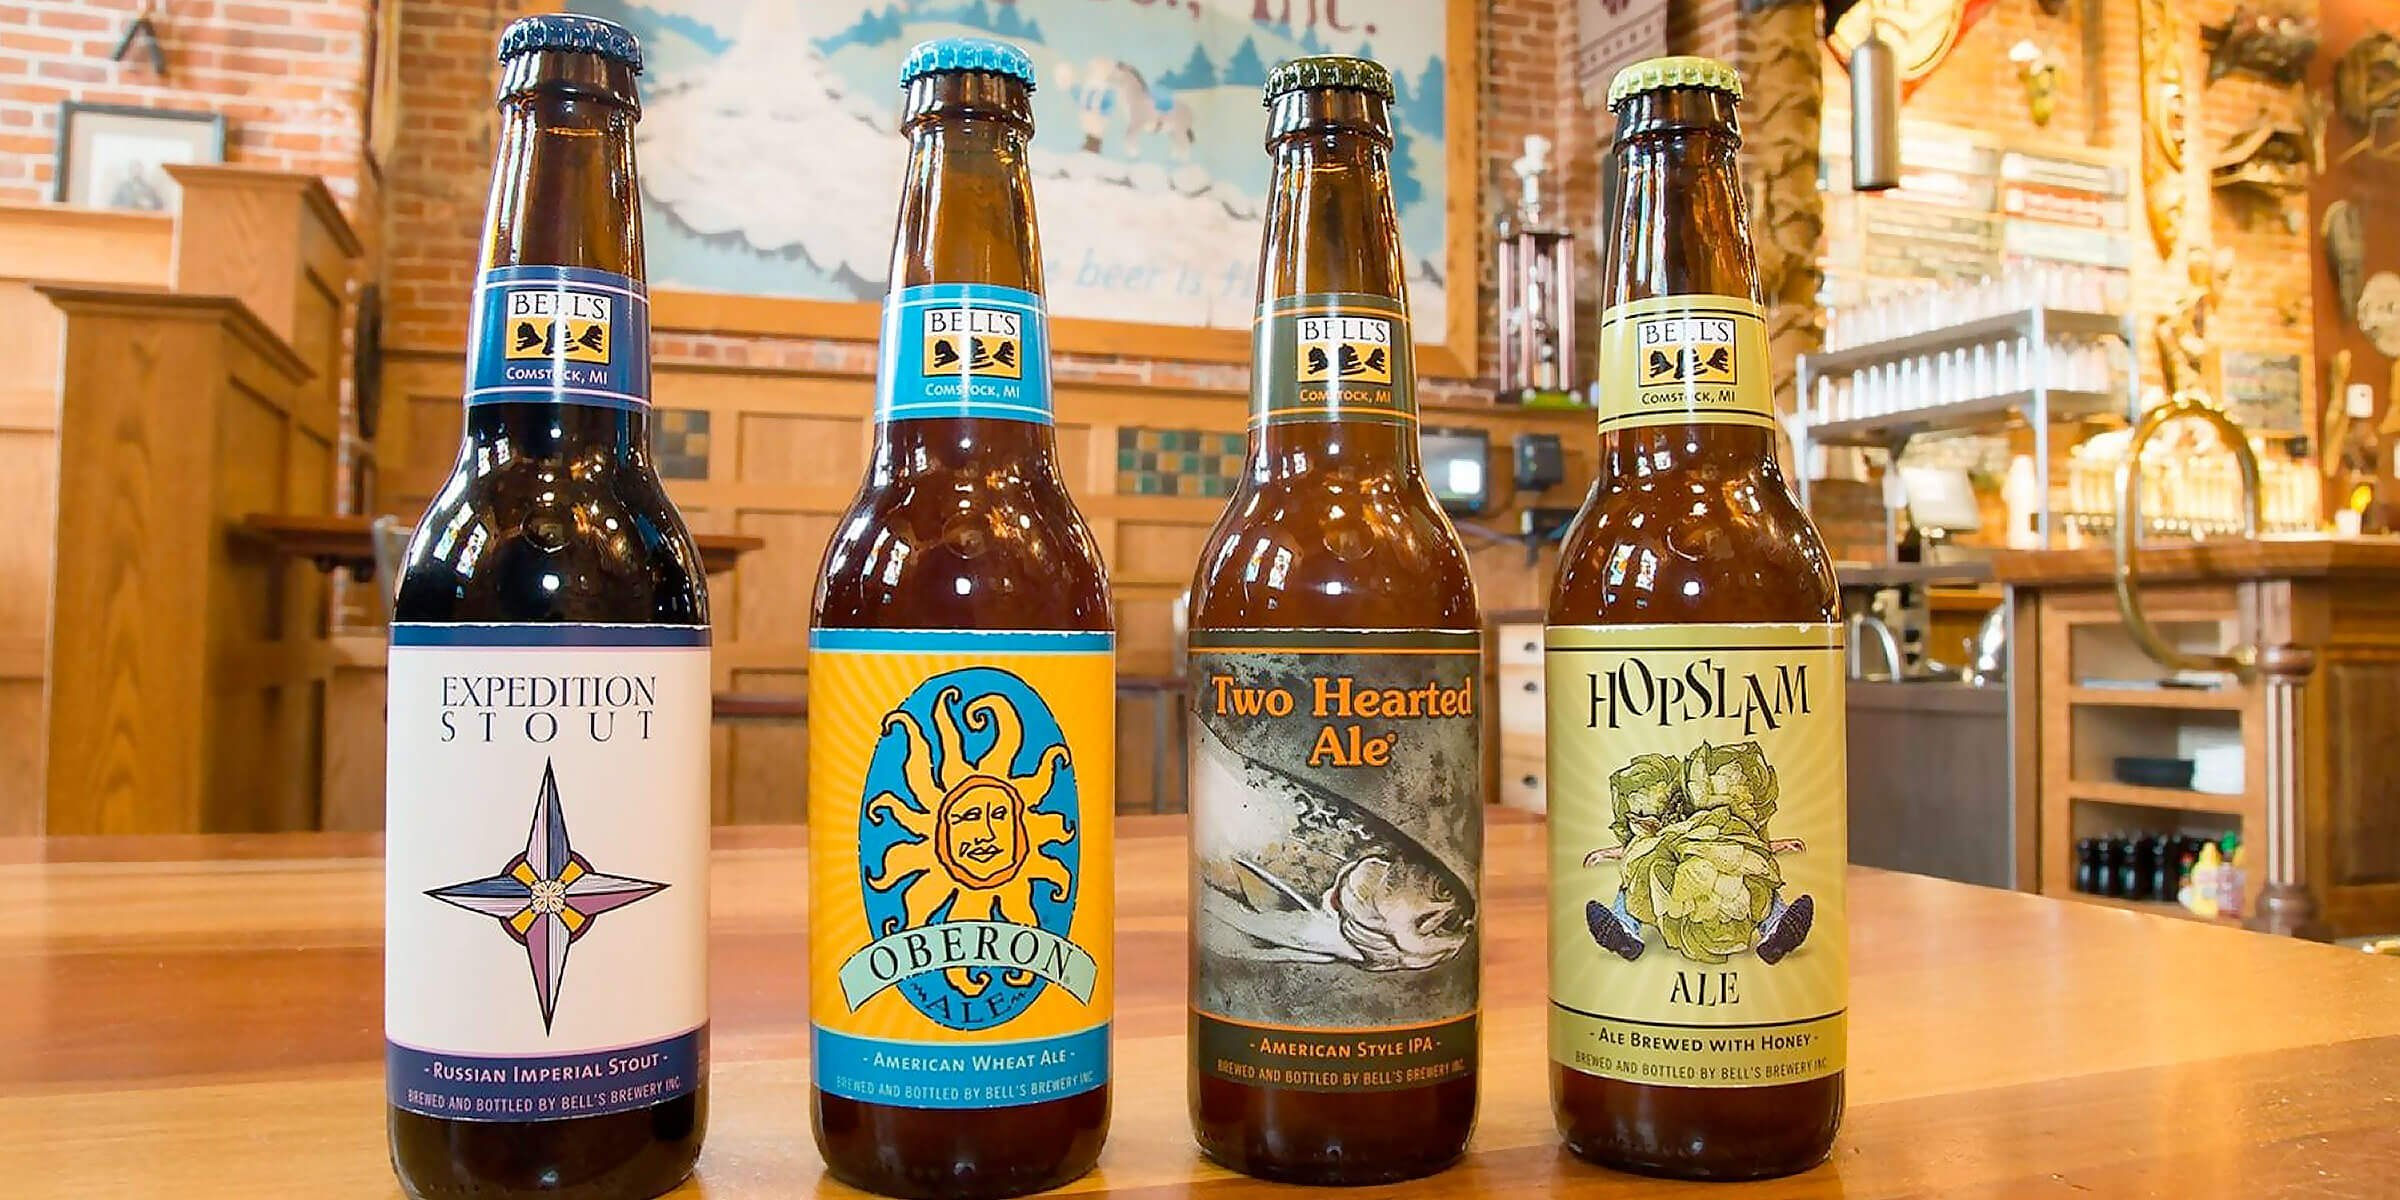 Lineup of bottled beers offered by Bell's Brewery, Inc.